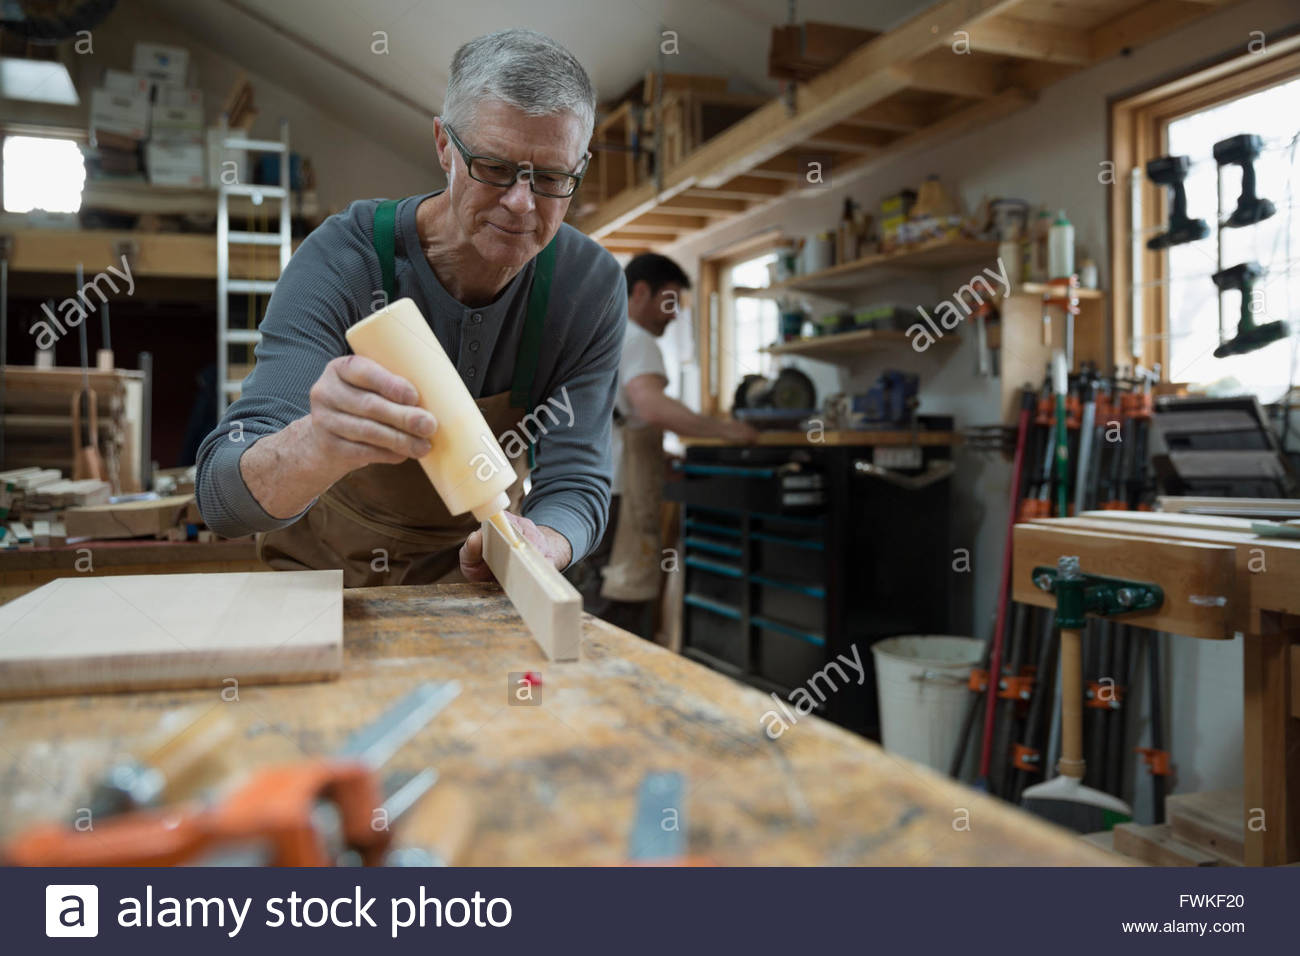 Carpenter gluing wood piece in workshop - Stock Image